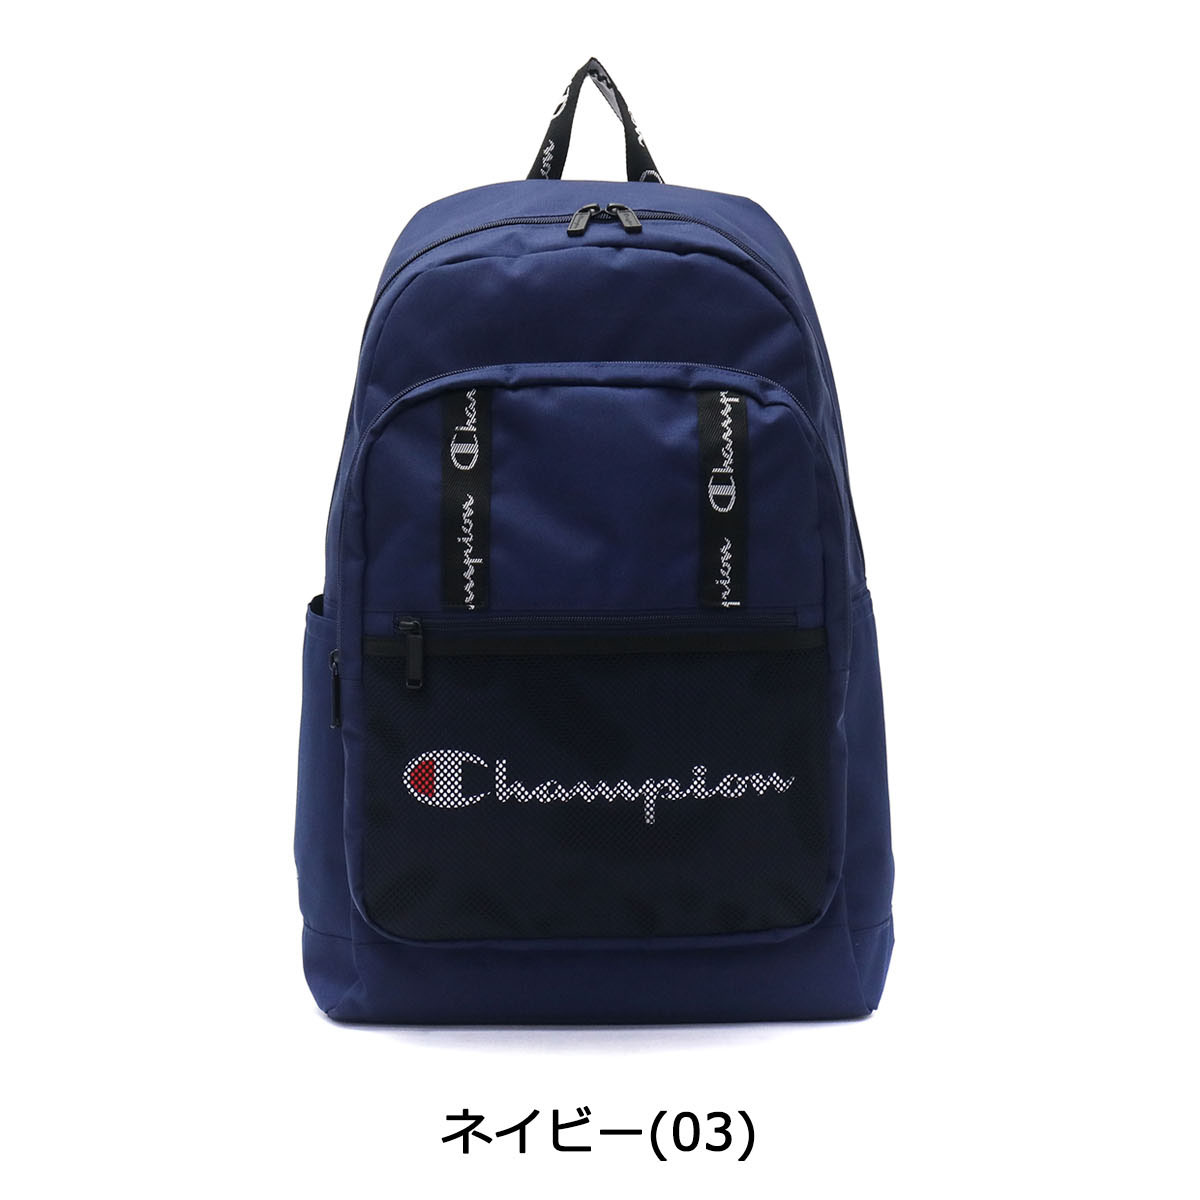 Galleria Bag Luggage Champion Backpack